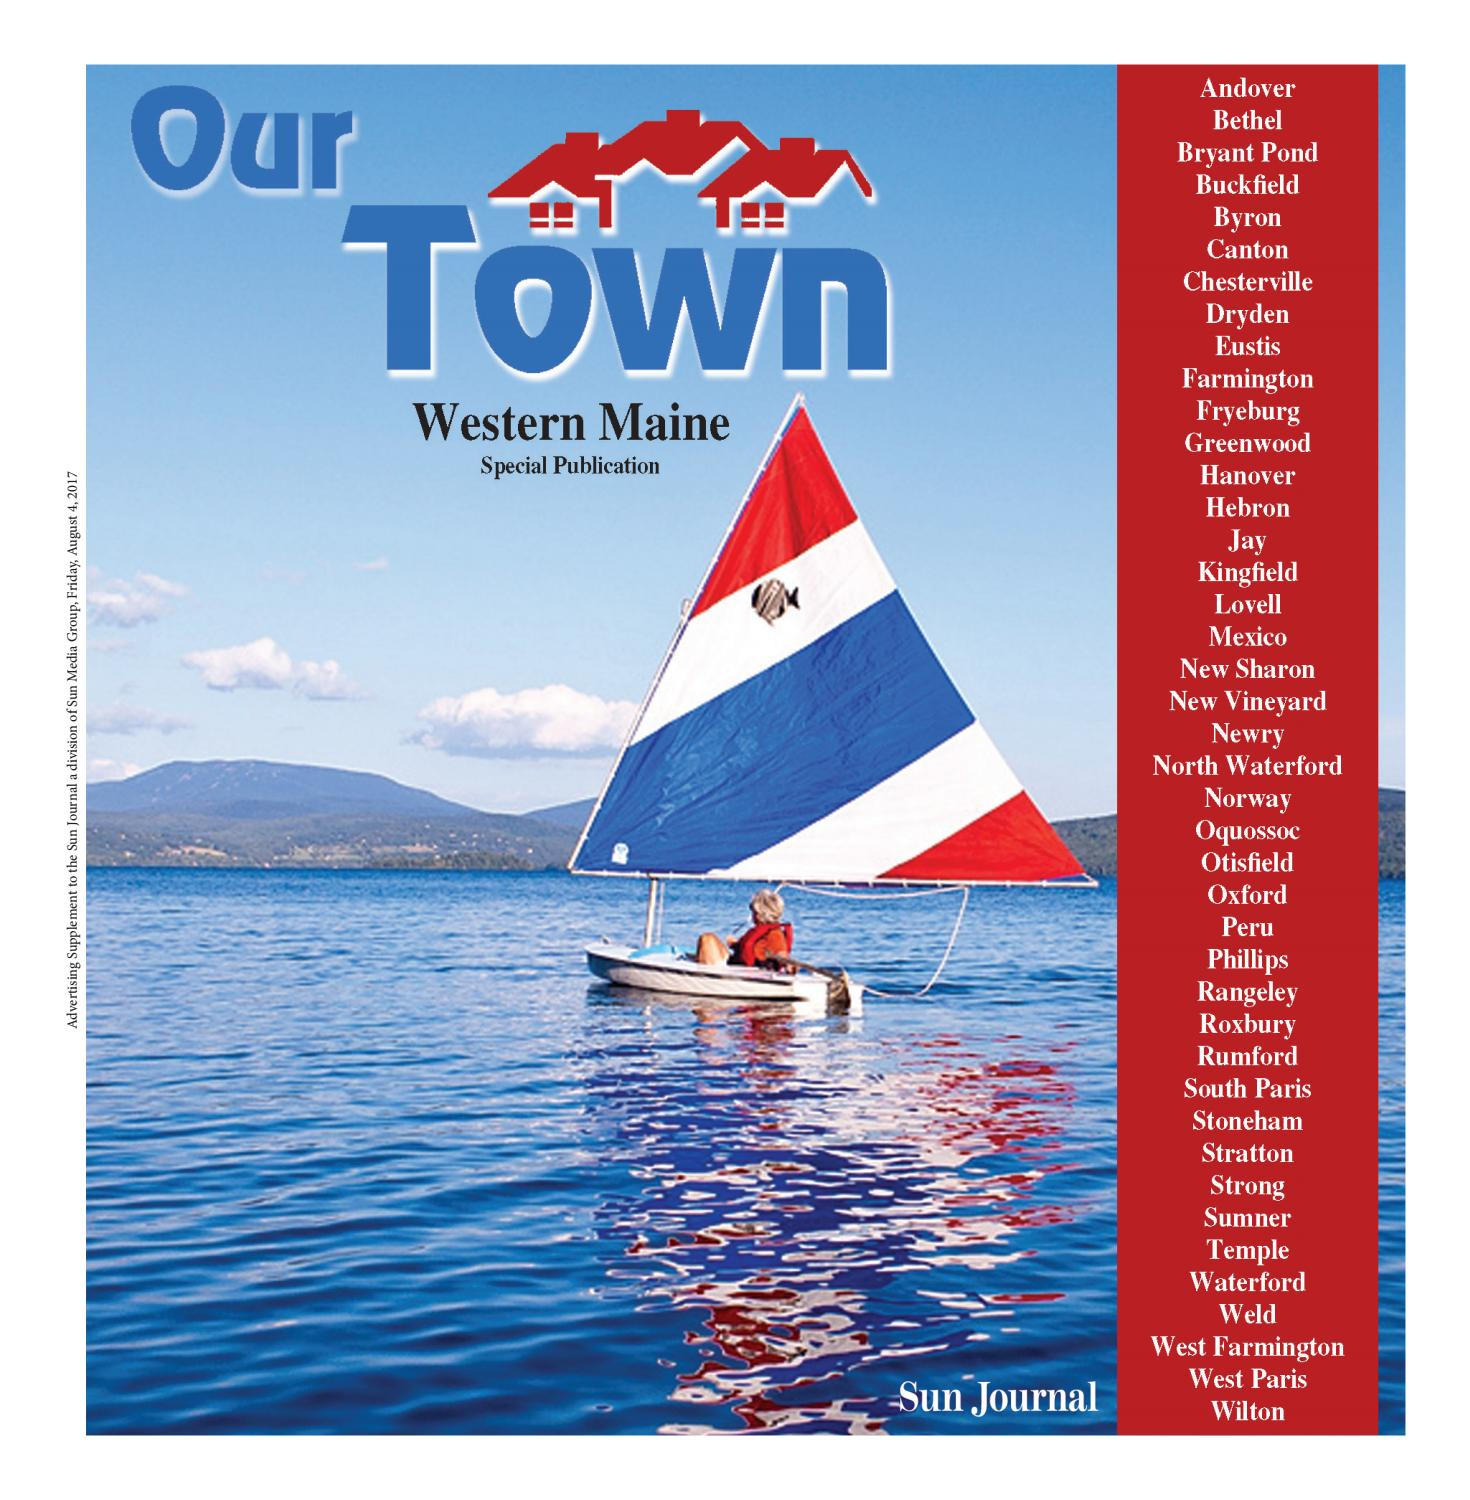 2017 Our Town: Western Maine by Sun Journal - issuu